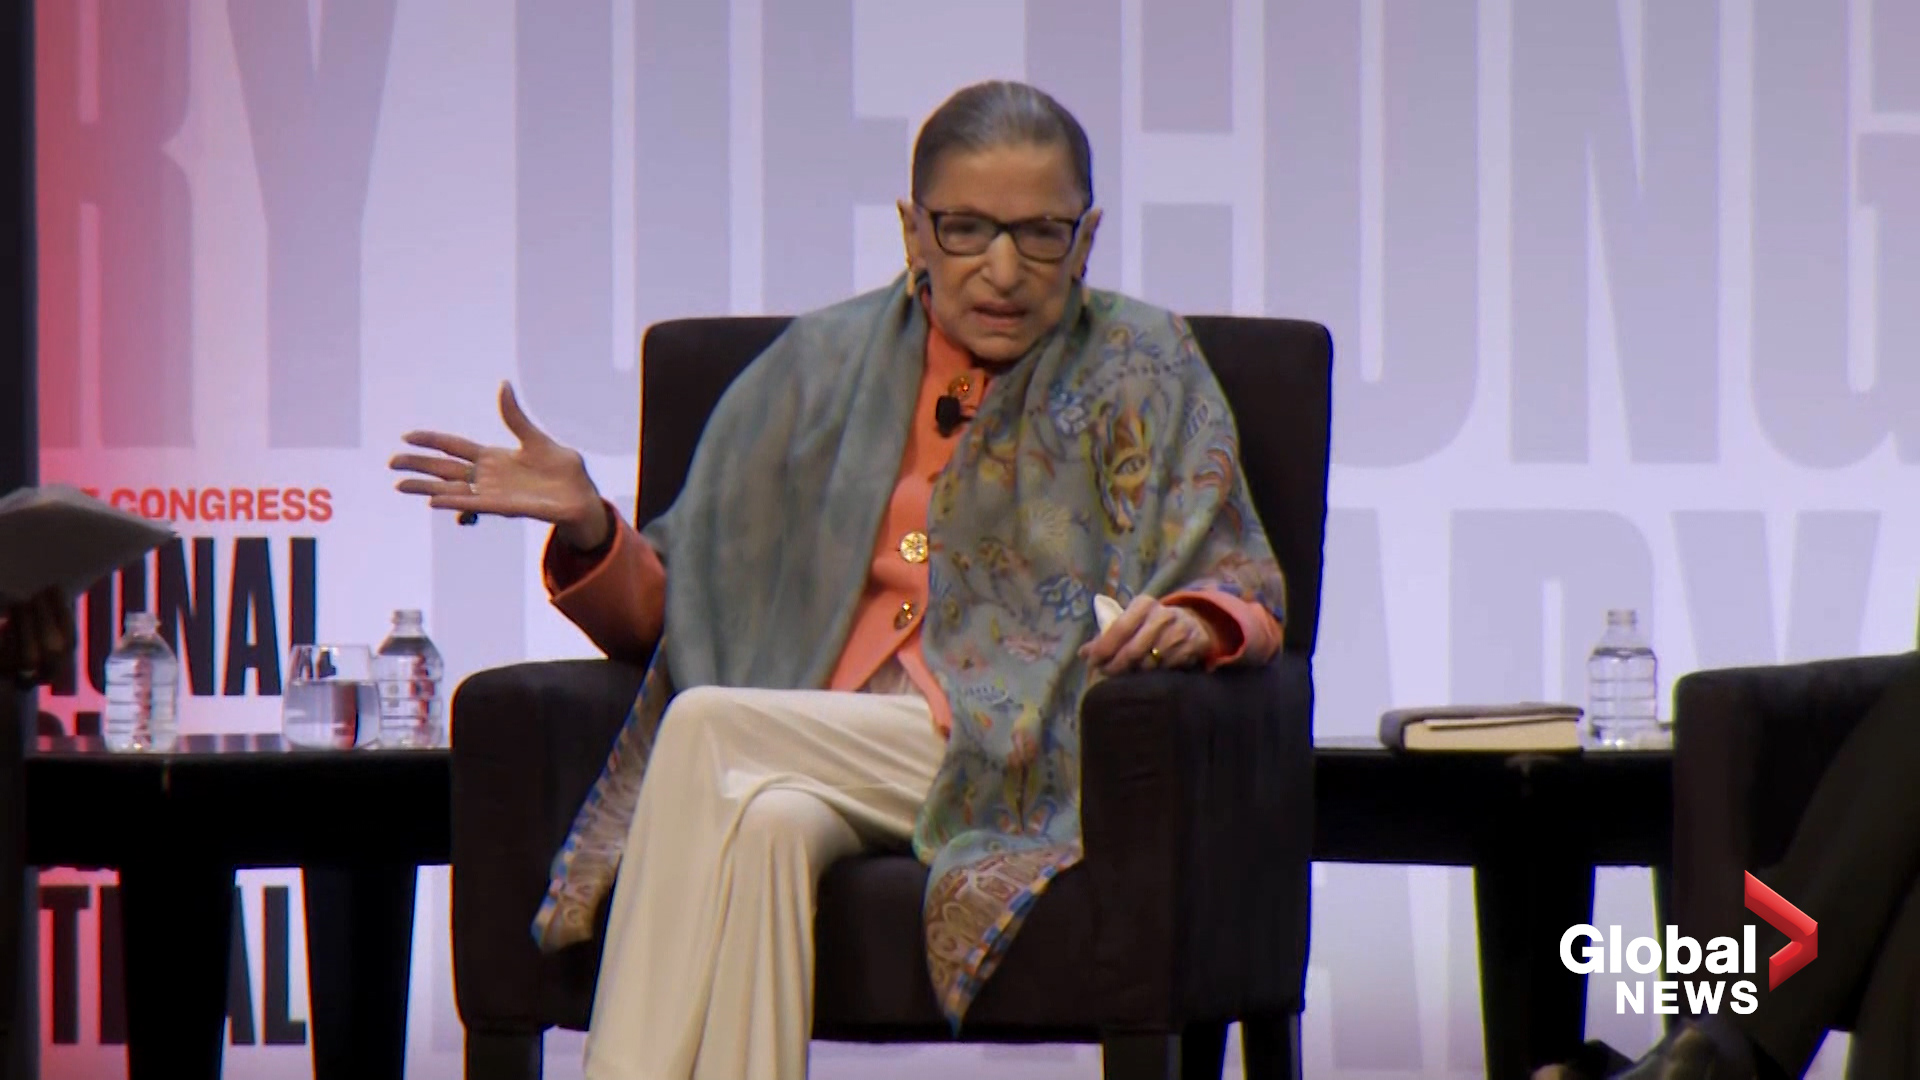 Ruth Bader Ginsburg tells audience it 'can see I am alive'